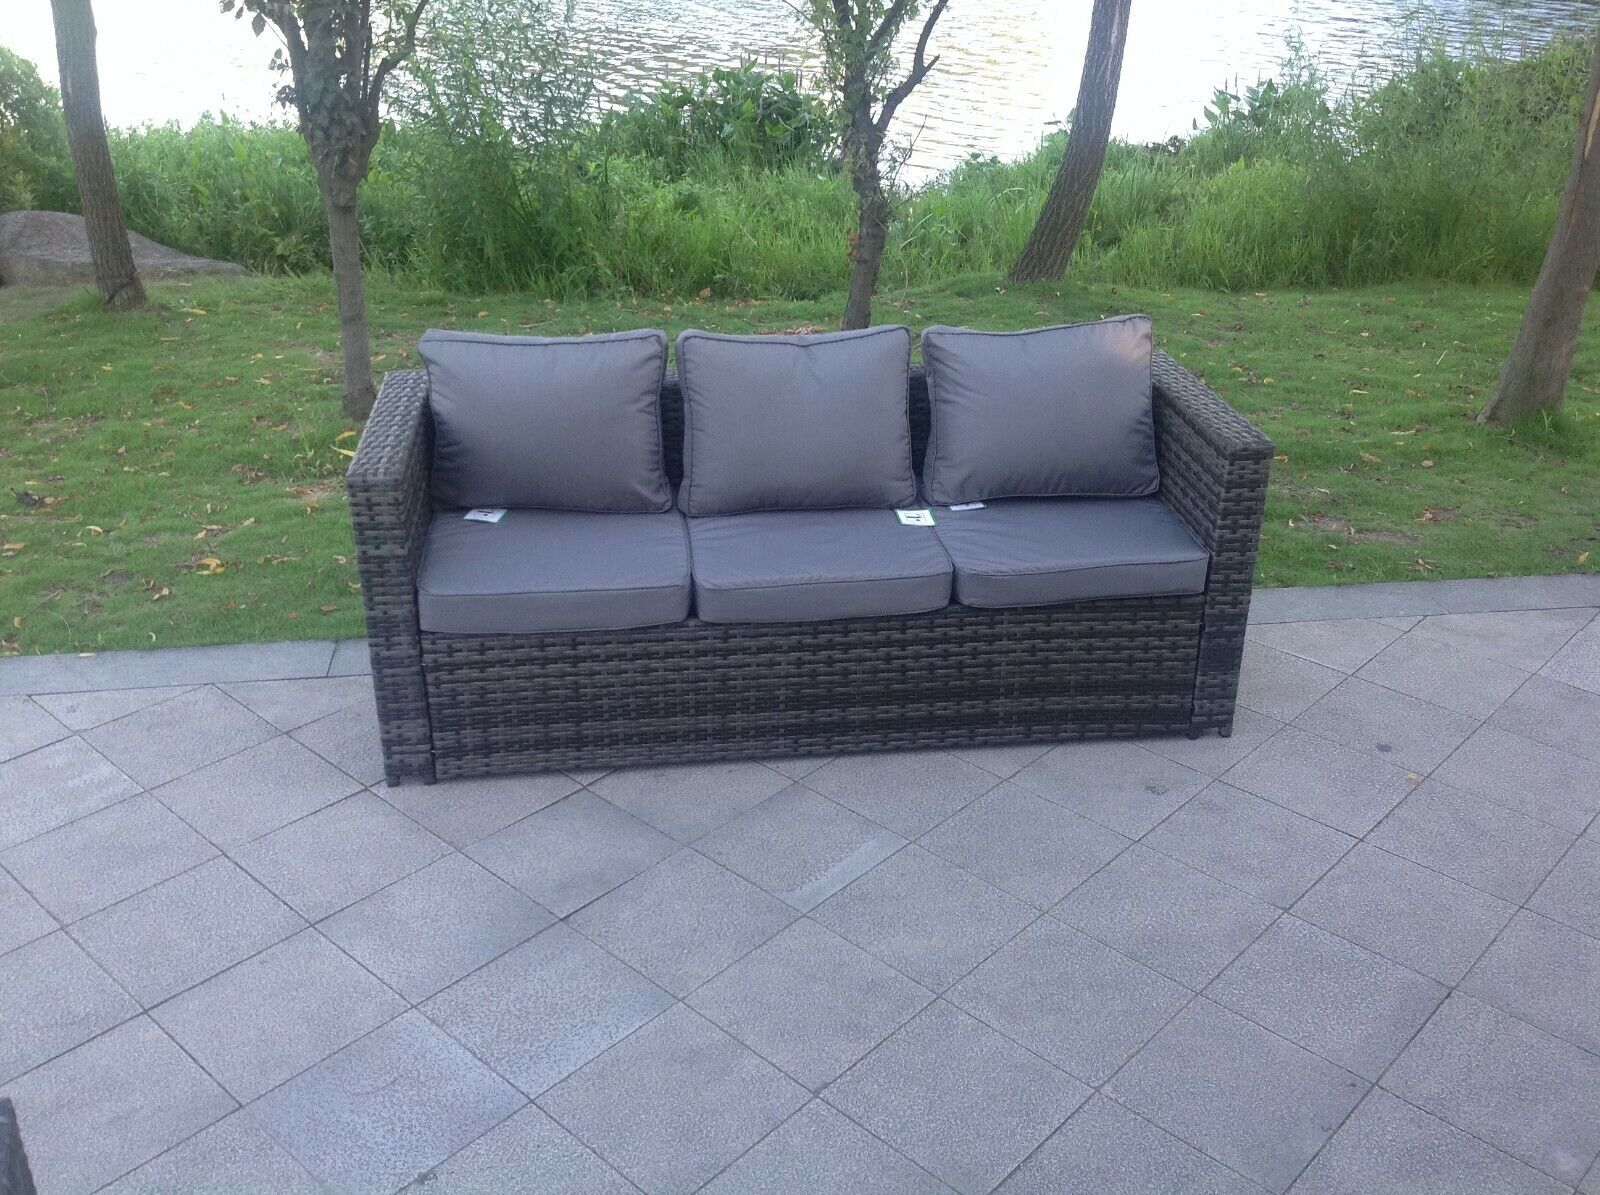 Garden Furniture - rattan 3 seater lounge sofa chair patio outdoor garden furniture with cushion